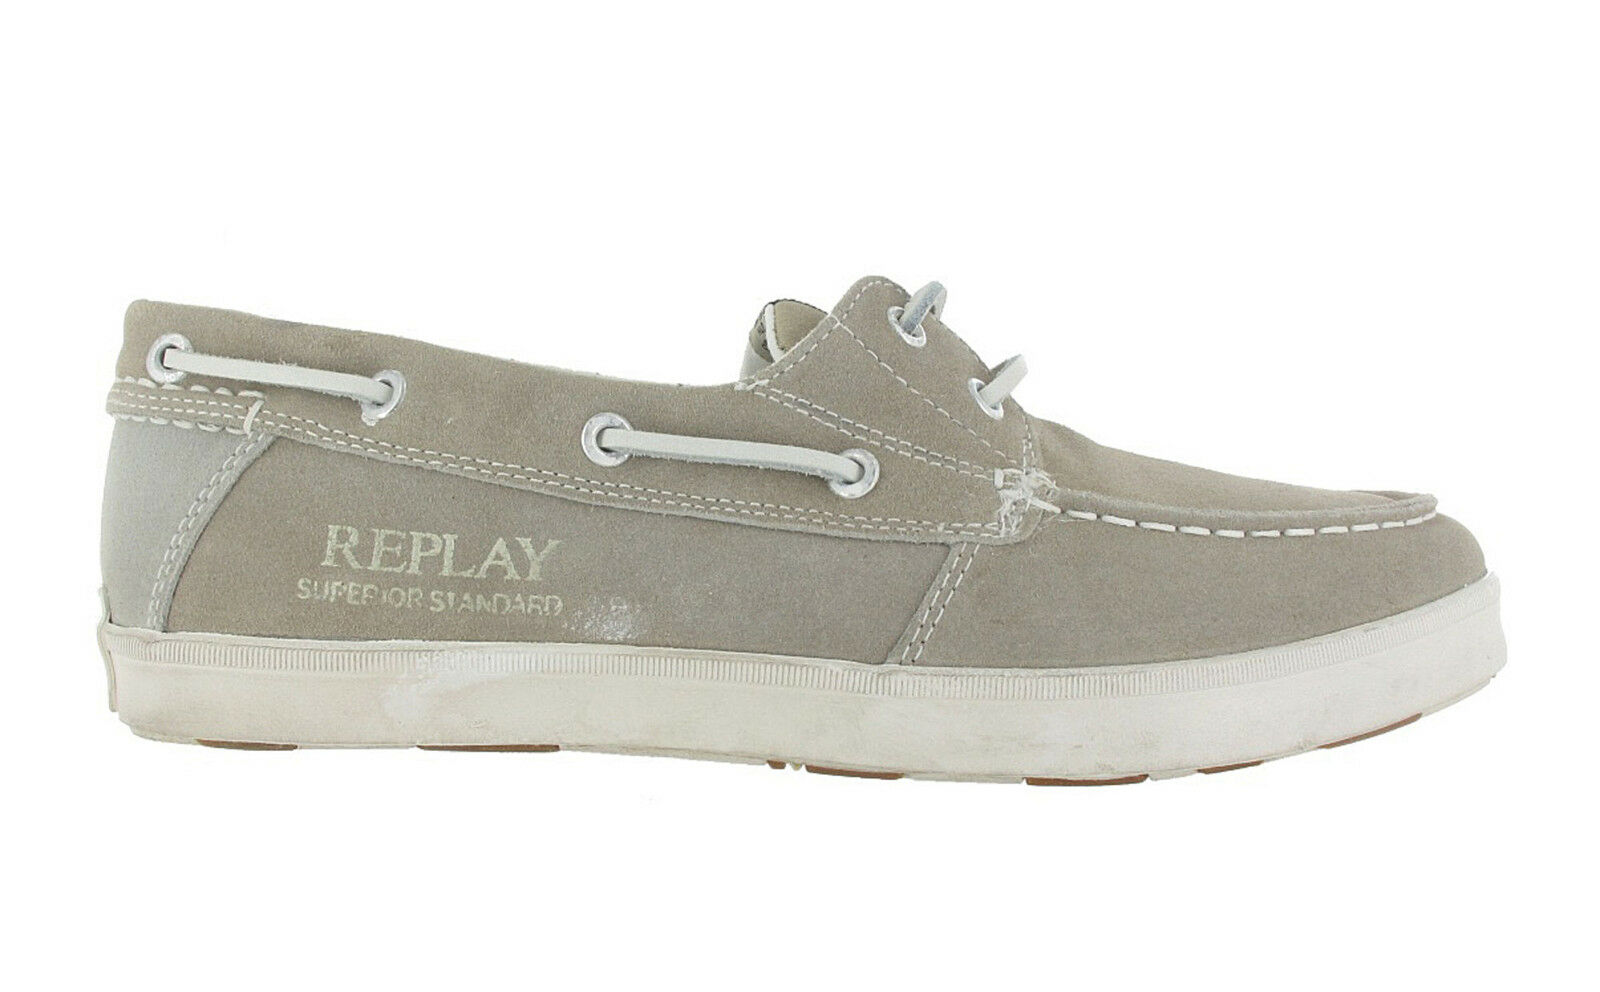 REPLAY - Stiefelschuh - REPLAY Jimi - ecru RV220005L ea6e00